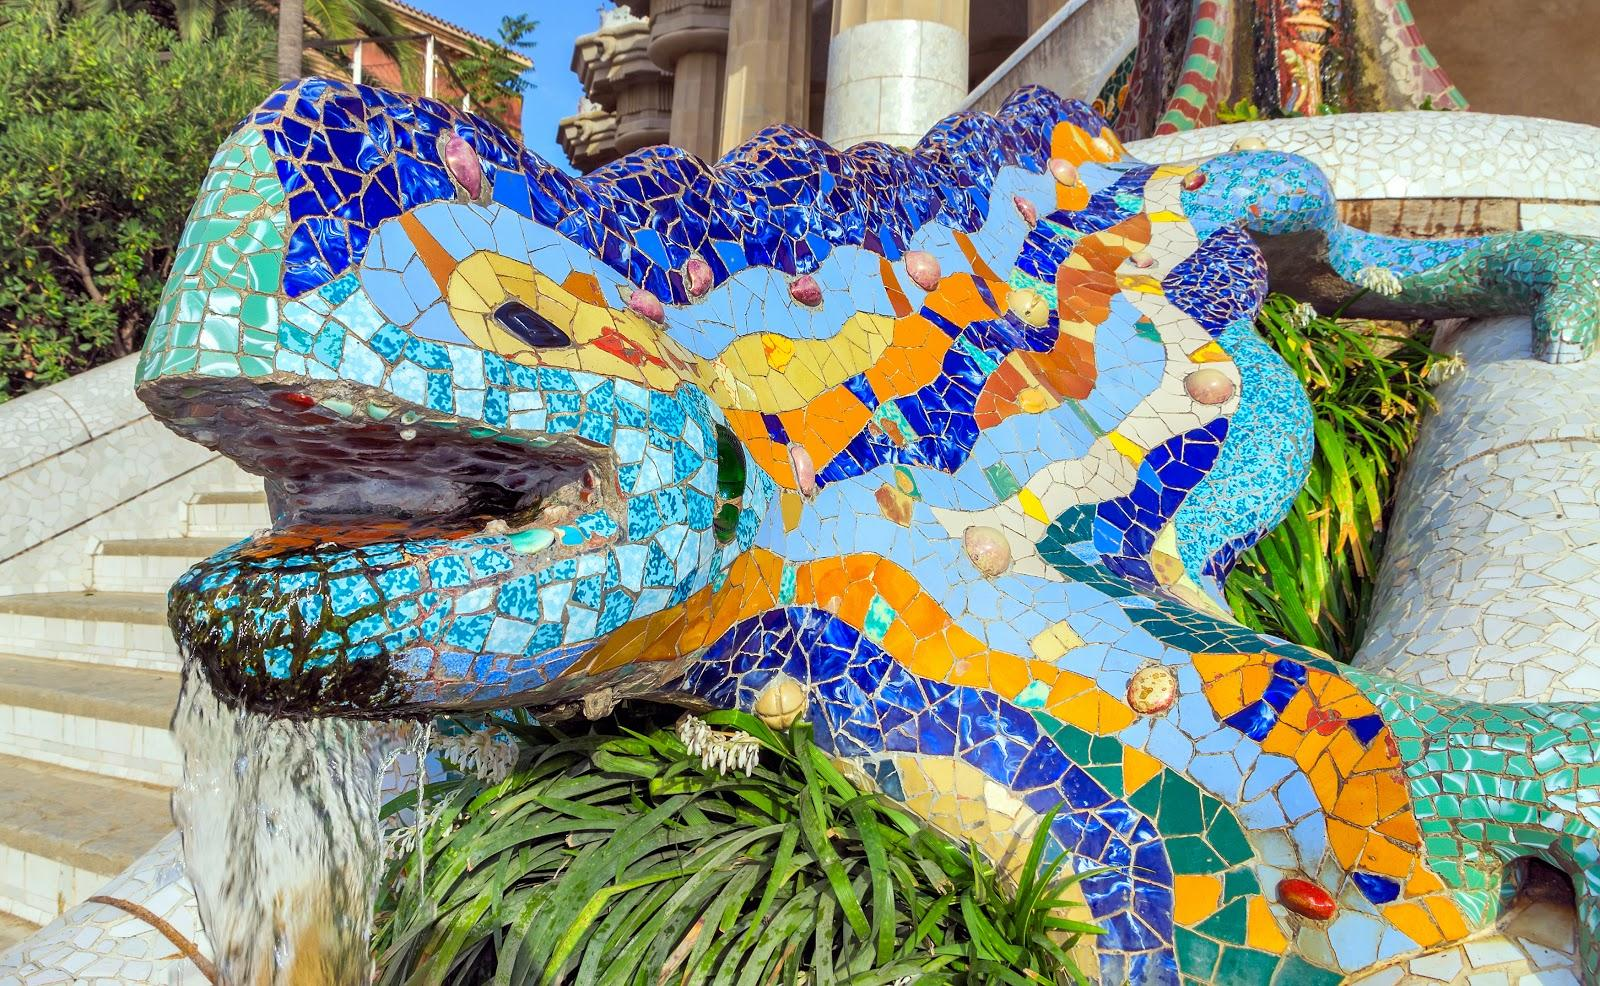 El Drac, the mosaic-covered lizard sculpture tops most people's list of things to see when visiting Park Guell.